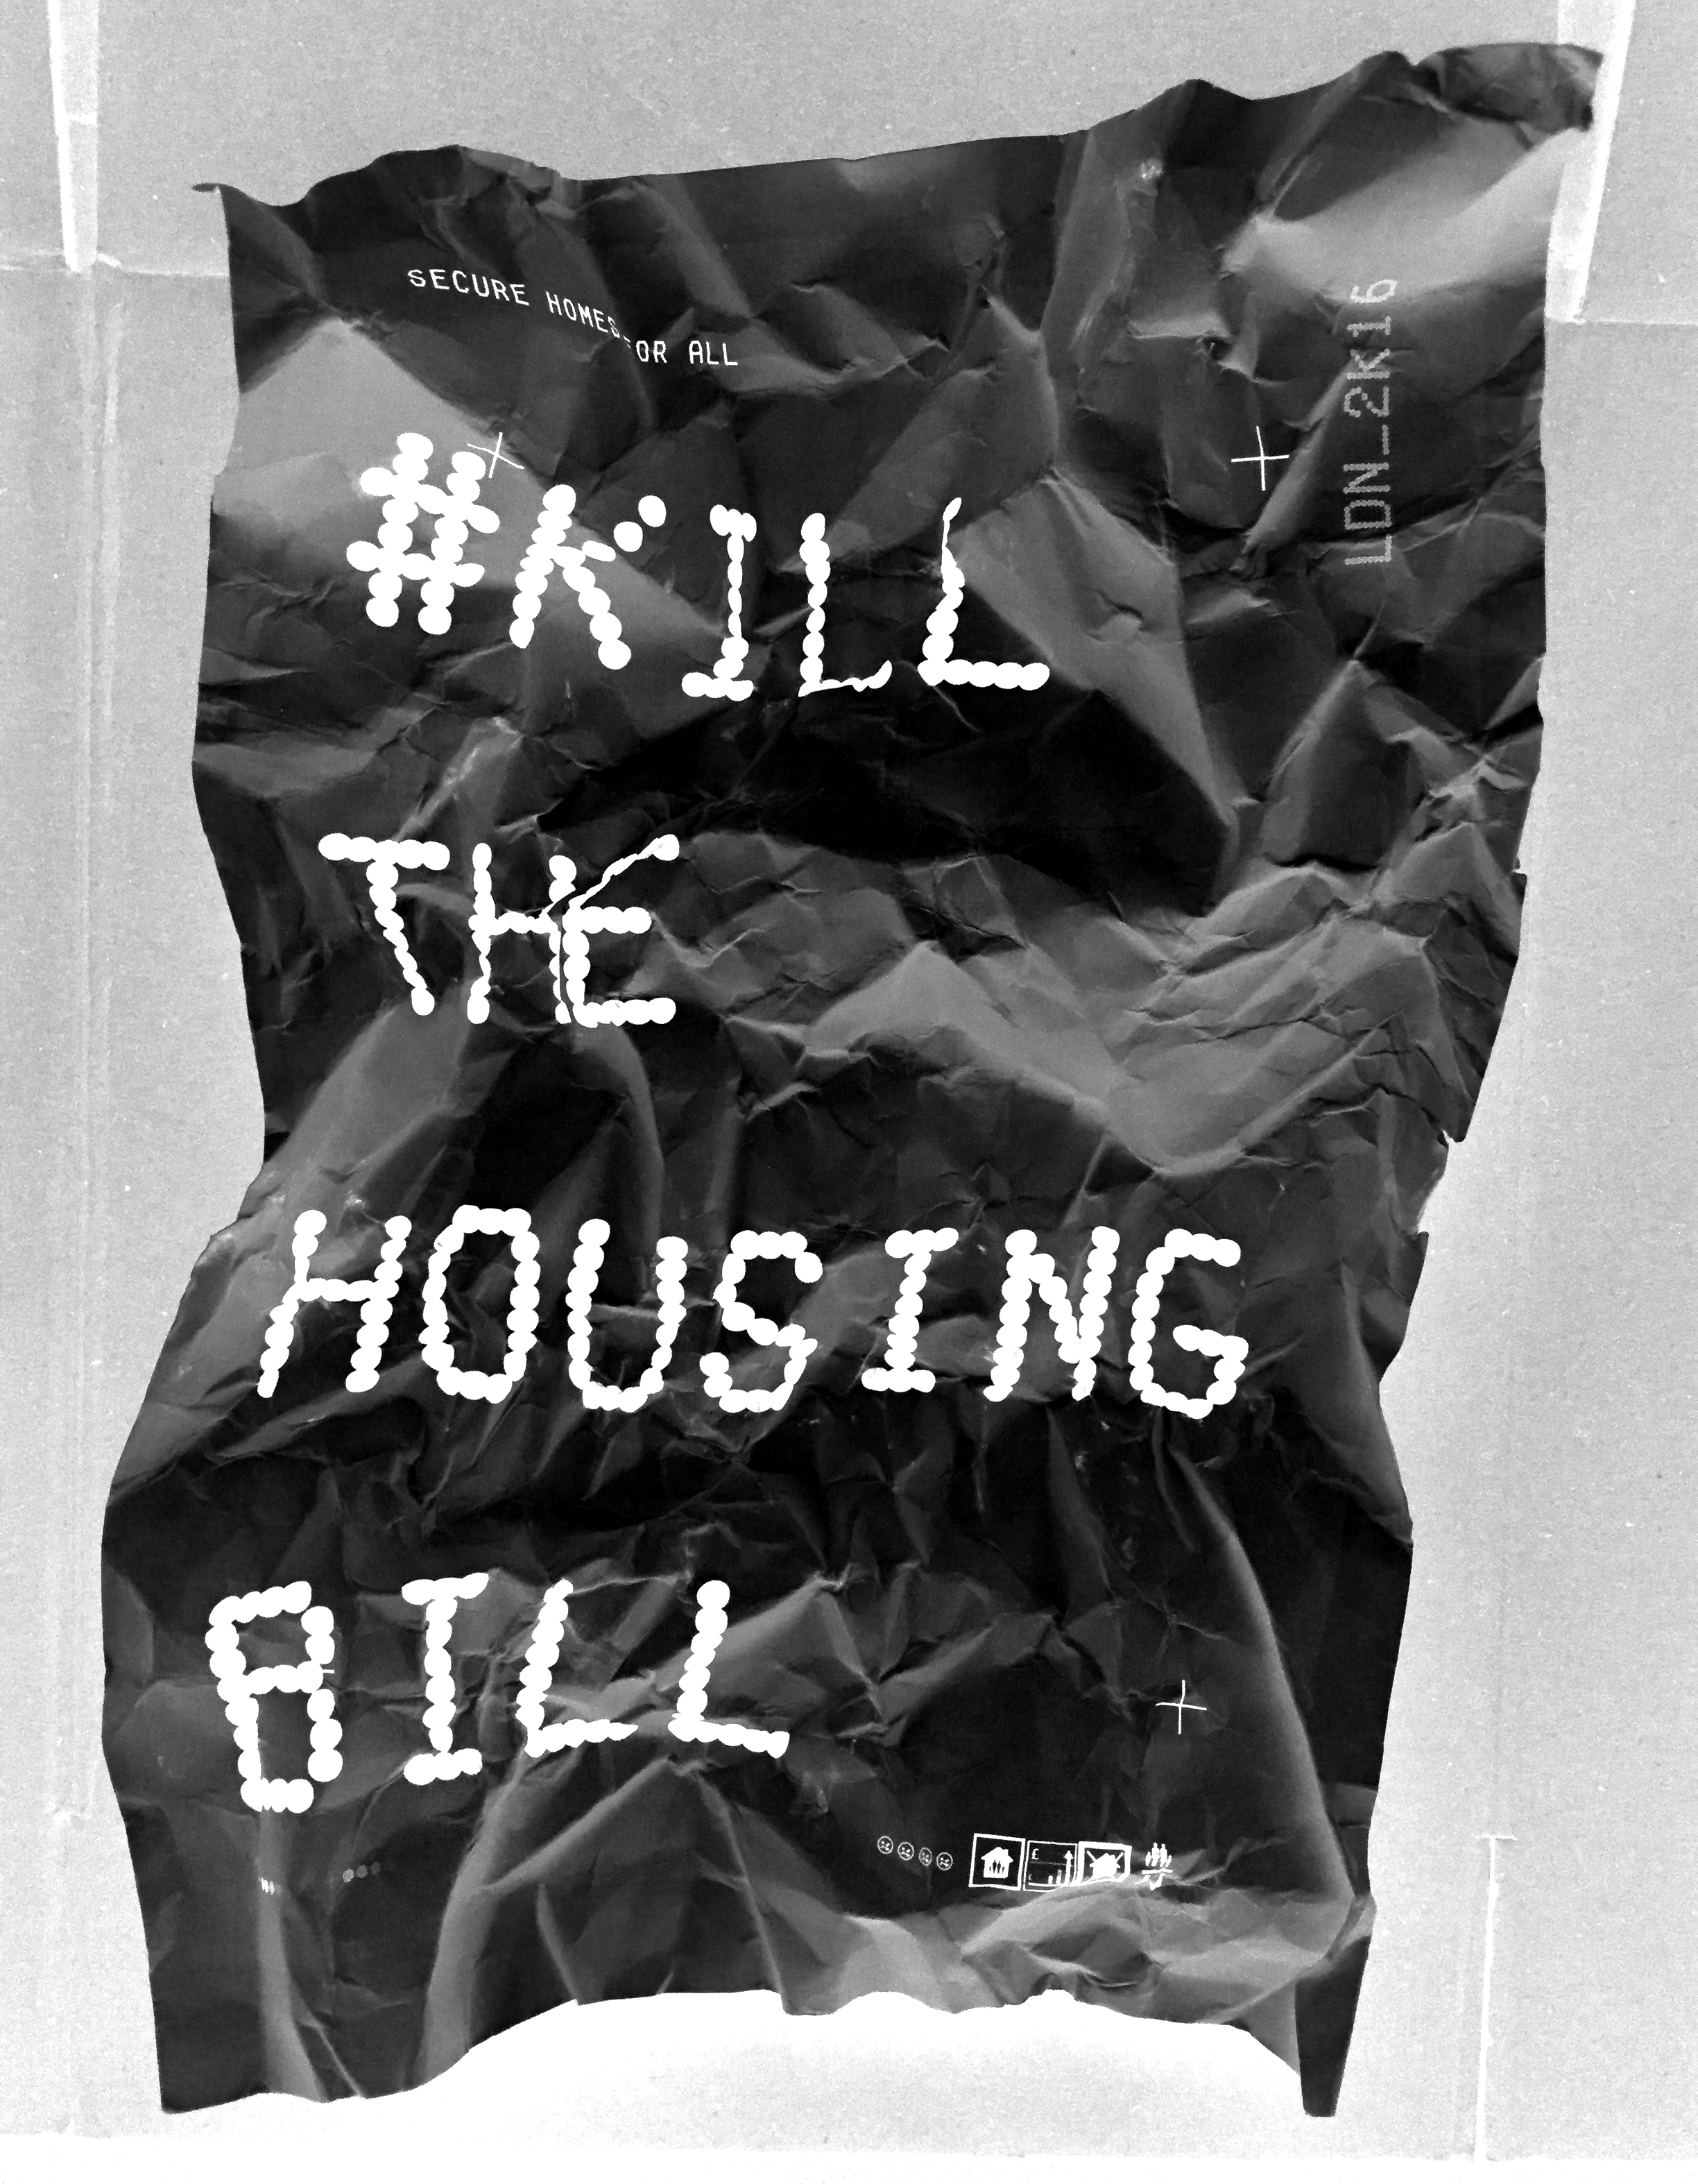 KILLTHEHOUSINGBILL_screwedupBIG©SNUFFCREATIVE2016.jpg